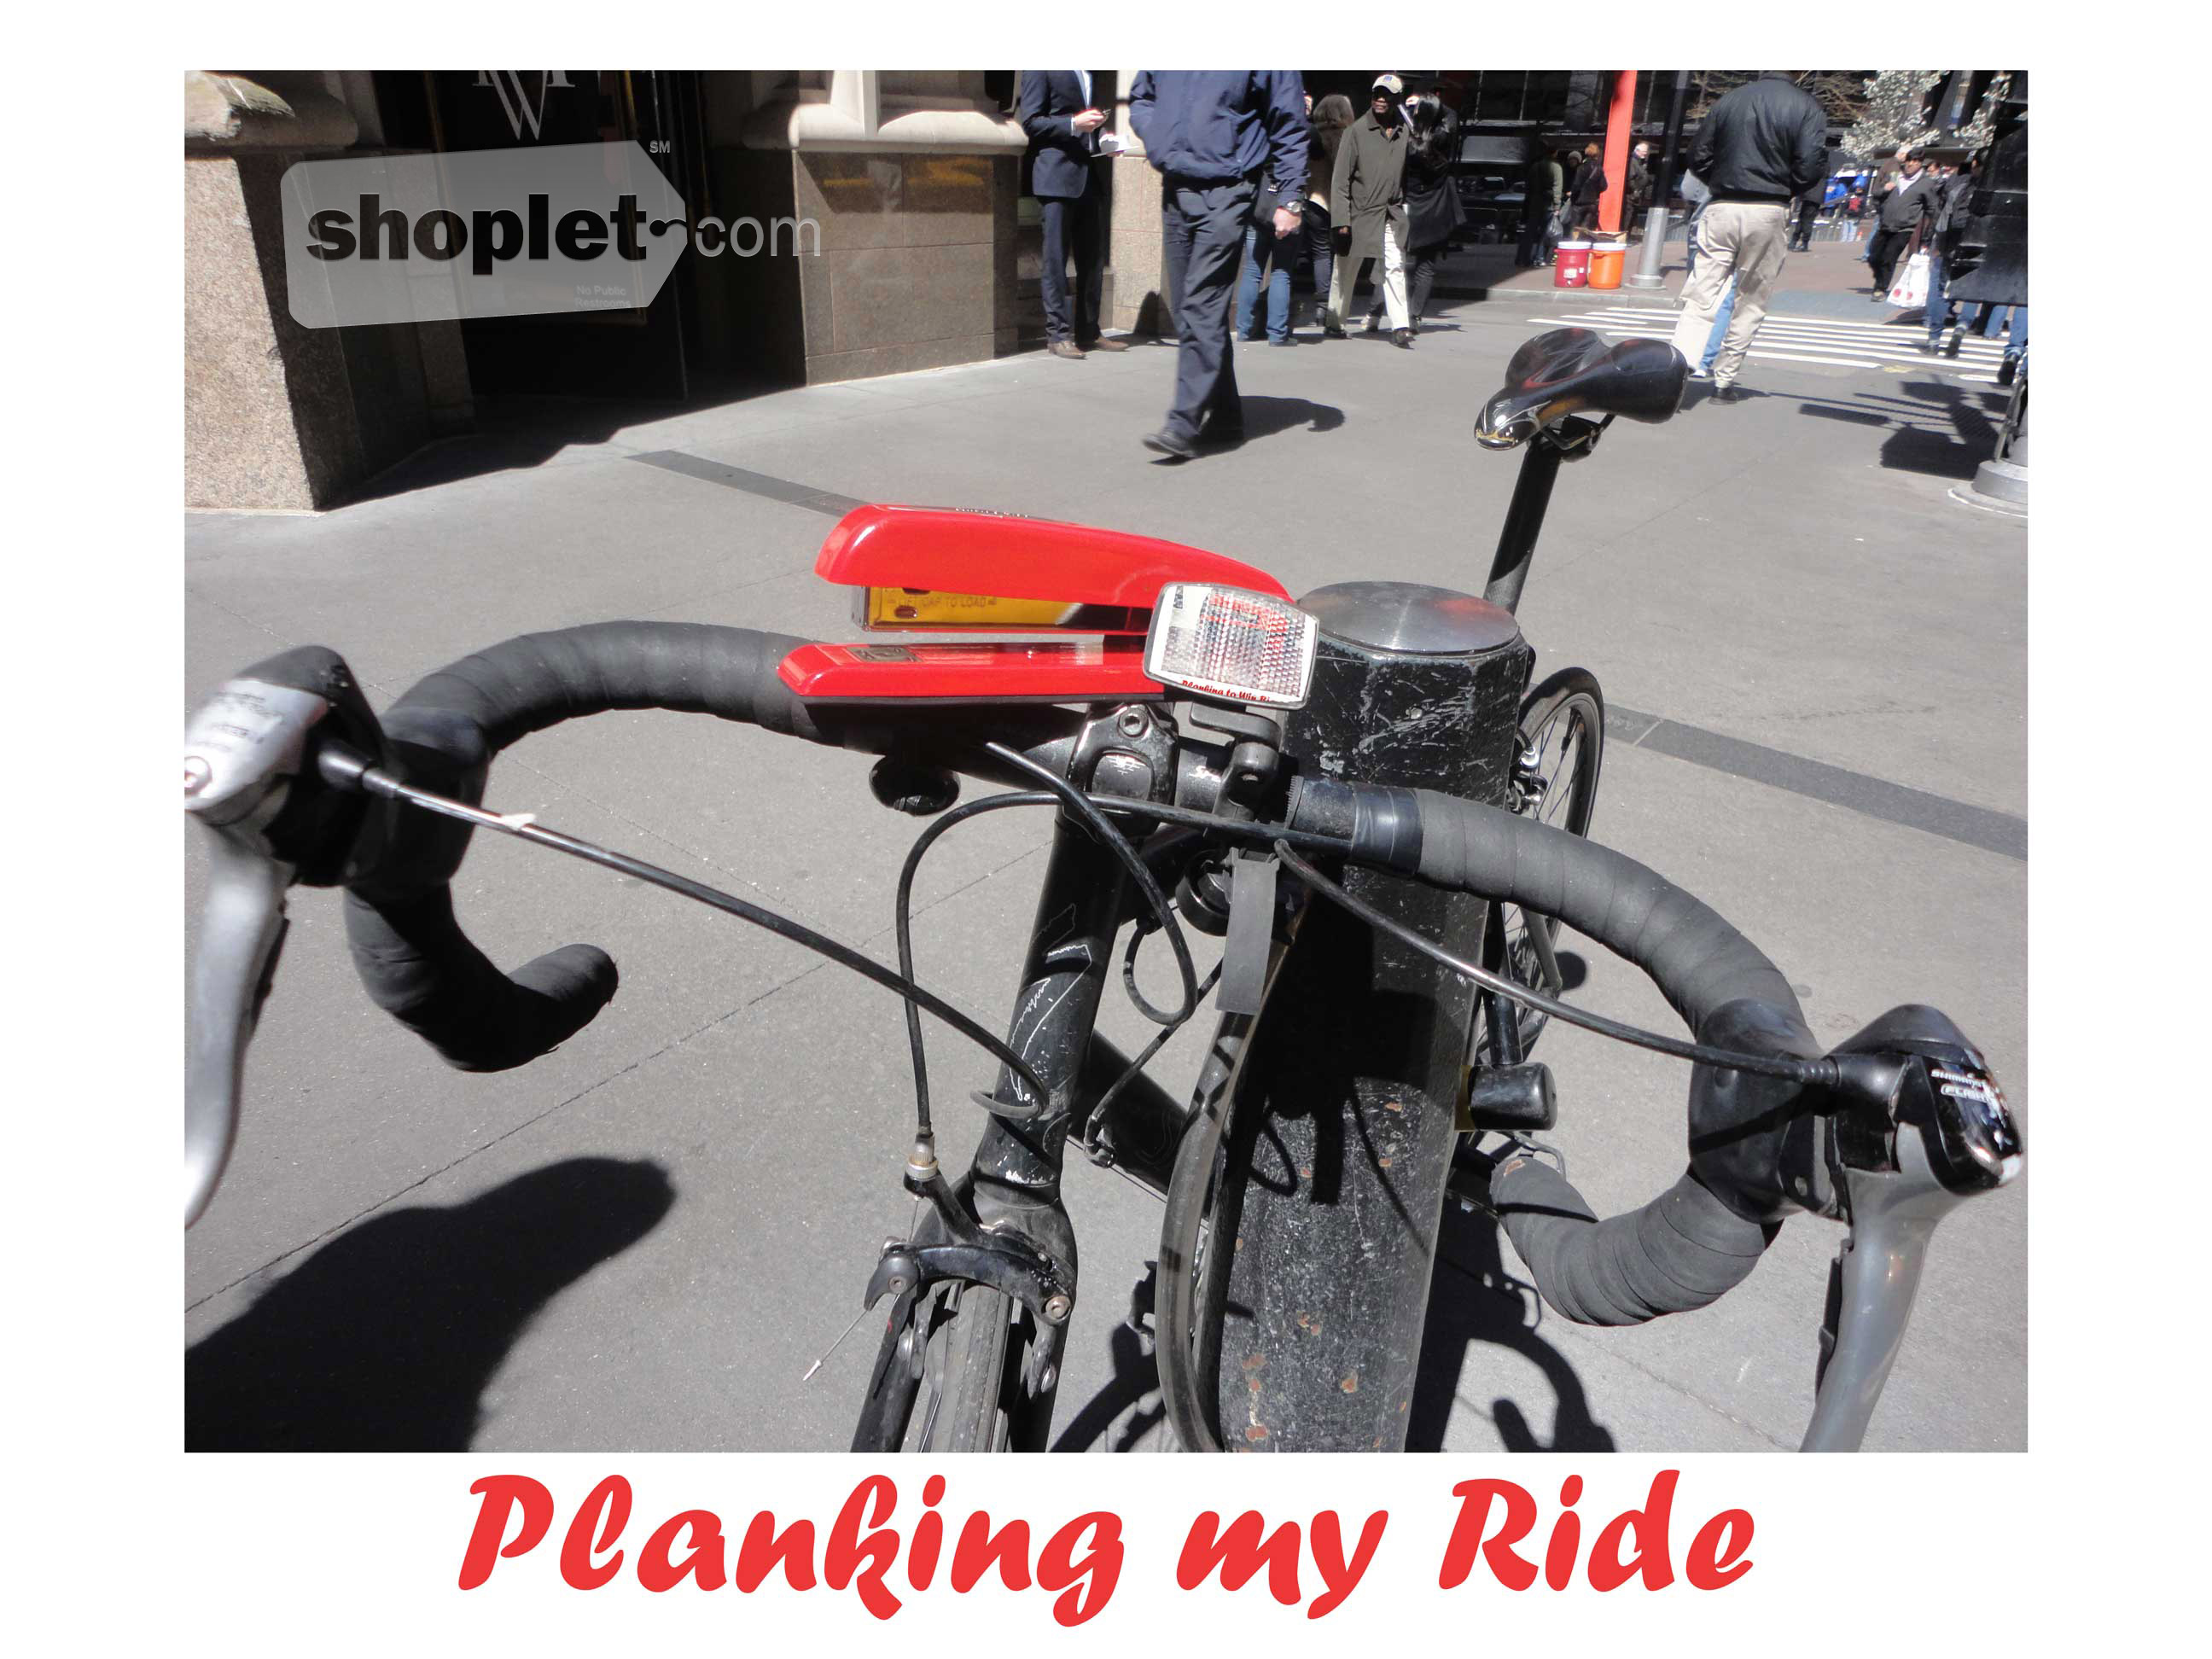 Shoplet Planking Stapler Bike Shoplet Planking Stapler Planks on a Bike